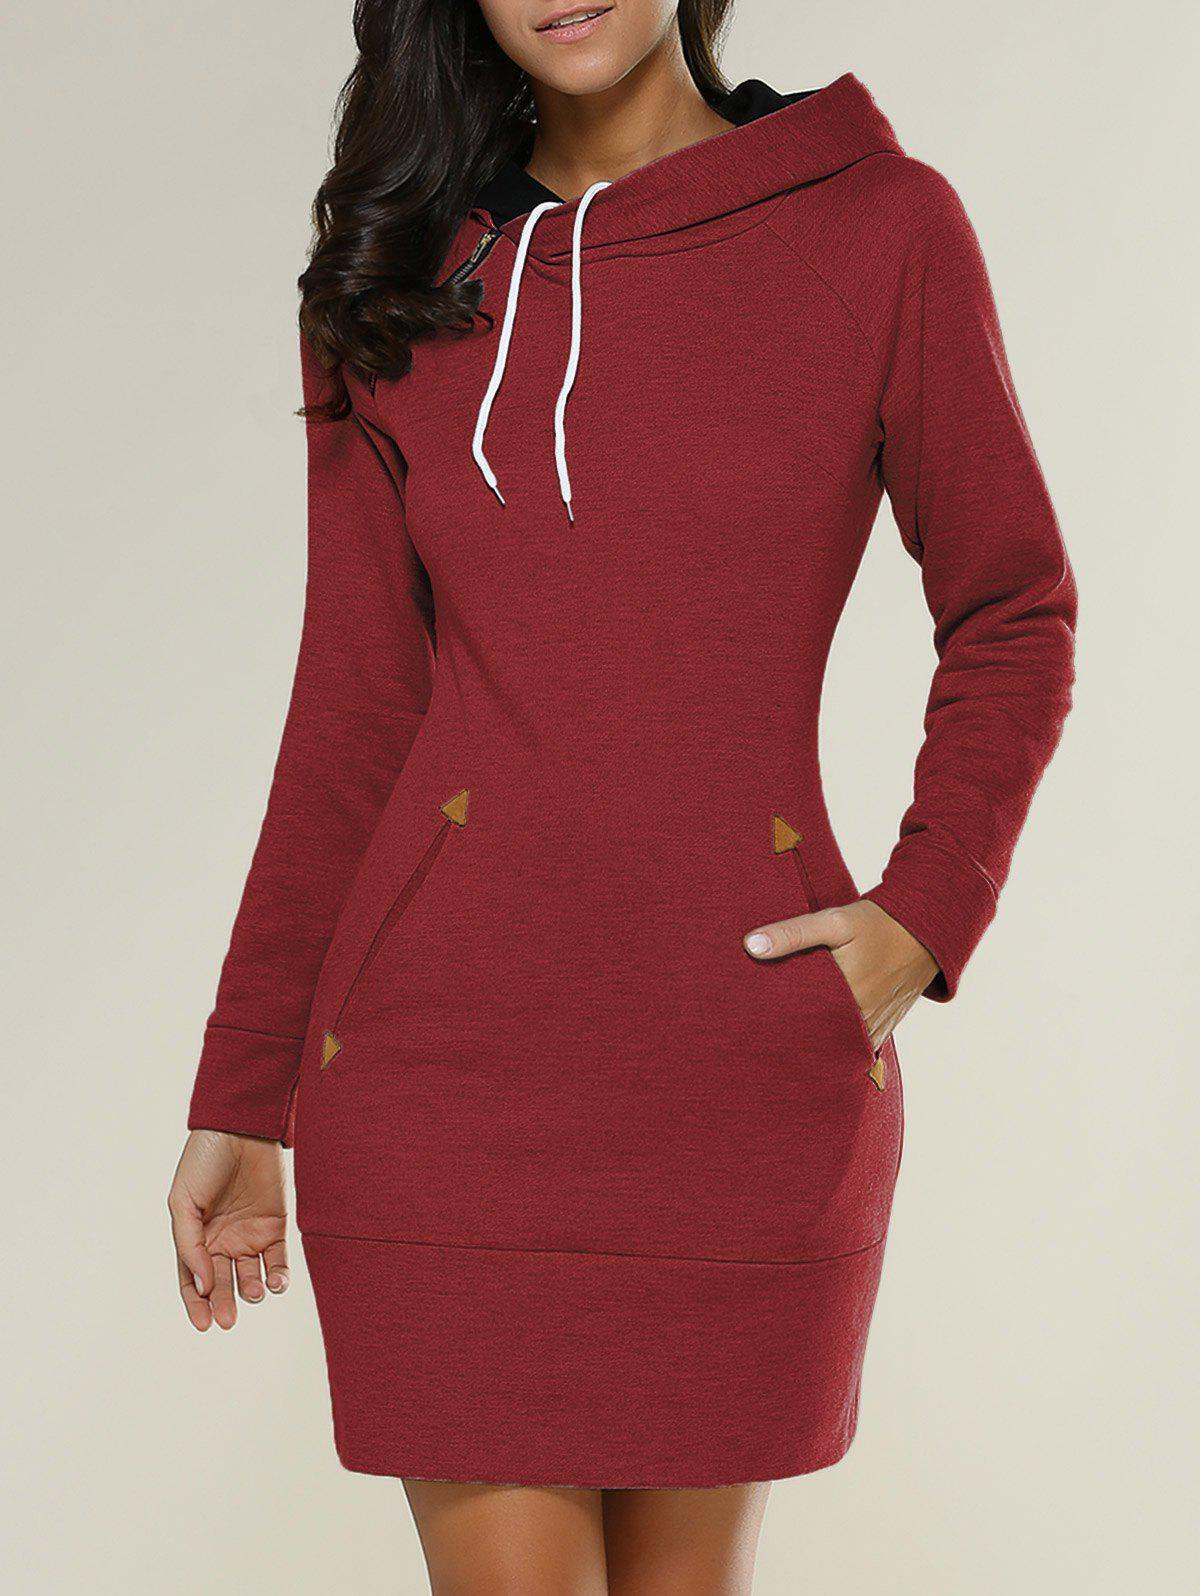 Tight Short Long Sleeve Long Hoodie Mini DressWOMEN<br><br>Size: XL; Color: RED; Style: Casual; Material: Polyester; Silhouette: Sheath; Dresses Length: Mini; Neckline: Hooded; Sleeve Length: Long Sleeves; Embellishment: Pockets; Pattern Type: Solid; With Belt: No; Season: Fall,Spring; Weight: 0.612kg; Package Contents: 1 x Hoodie Dress;